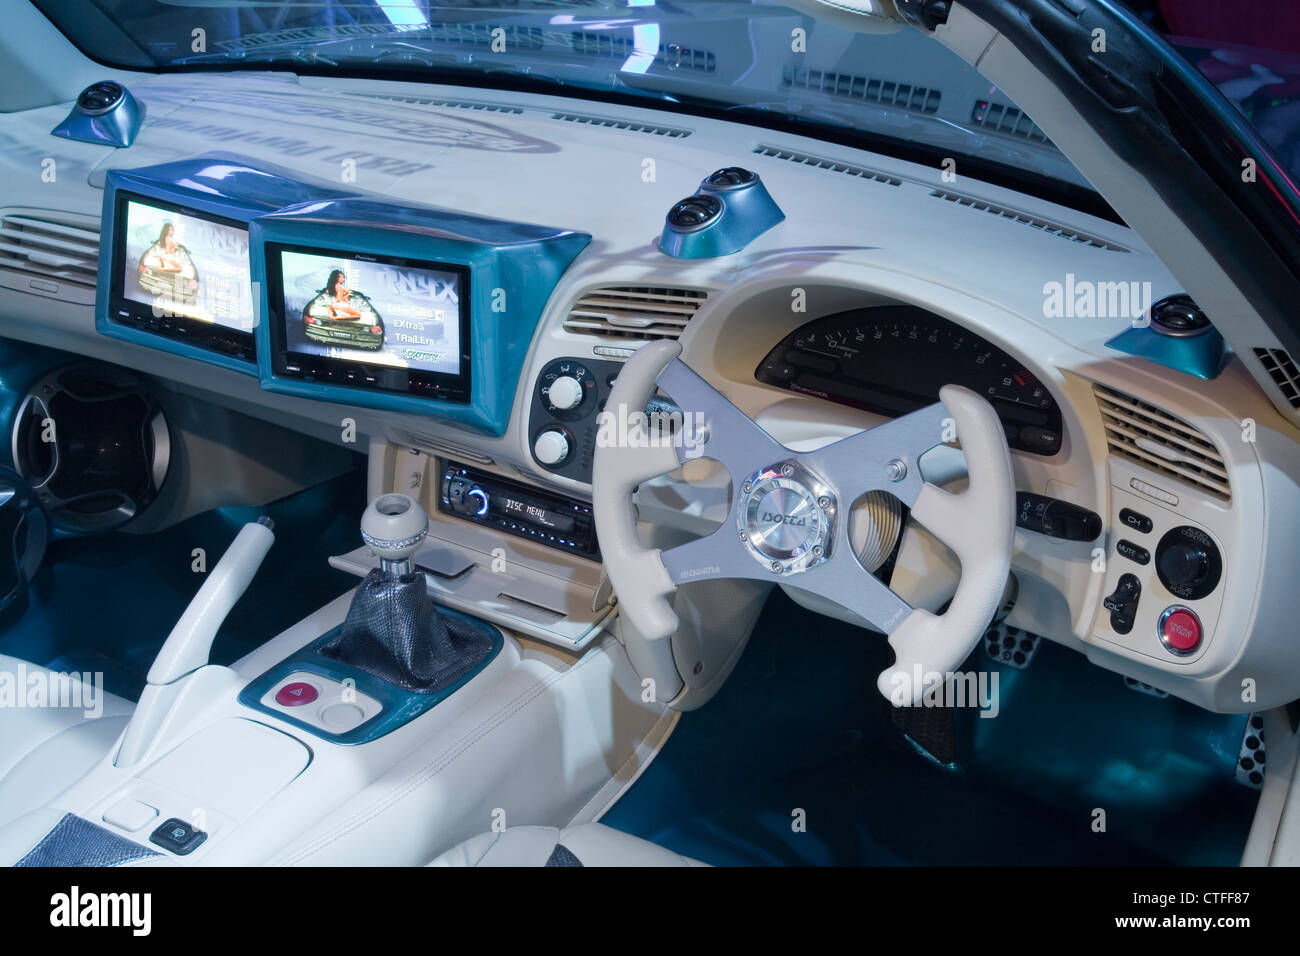 Heavily modified and customized cabin interior of a Boy Racer Honda ...